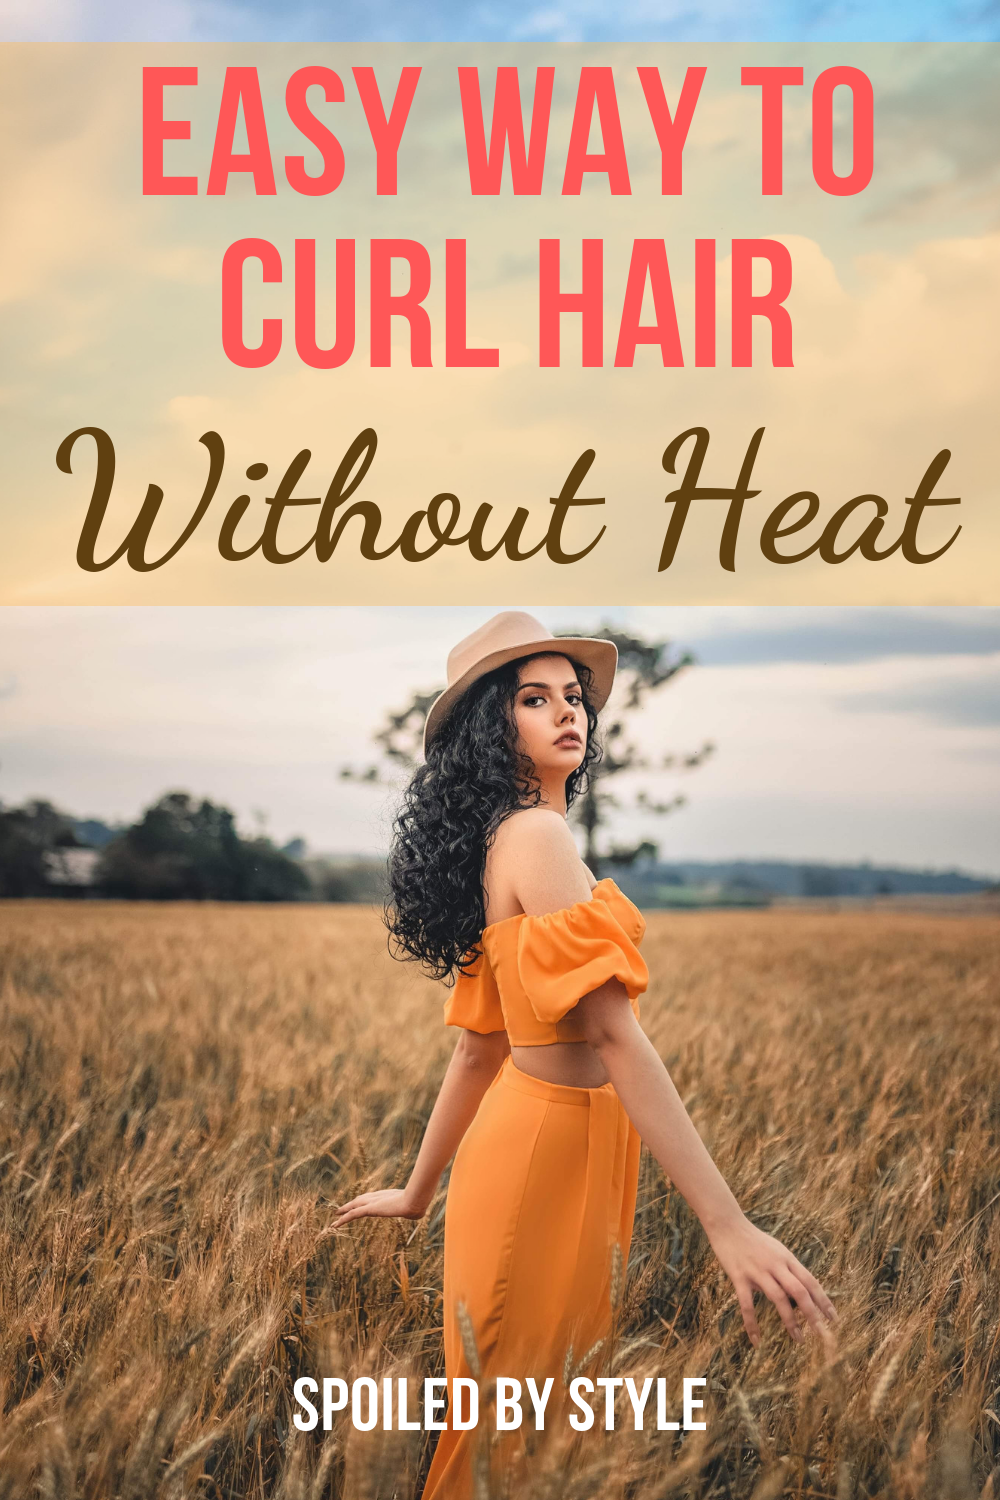 How To Curl Hair Without Heat In 5 Minutes